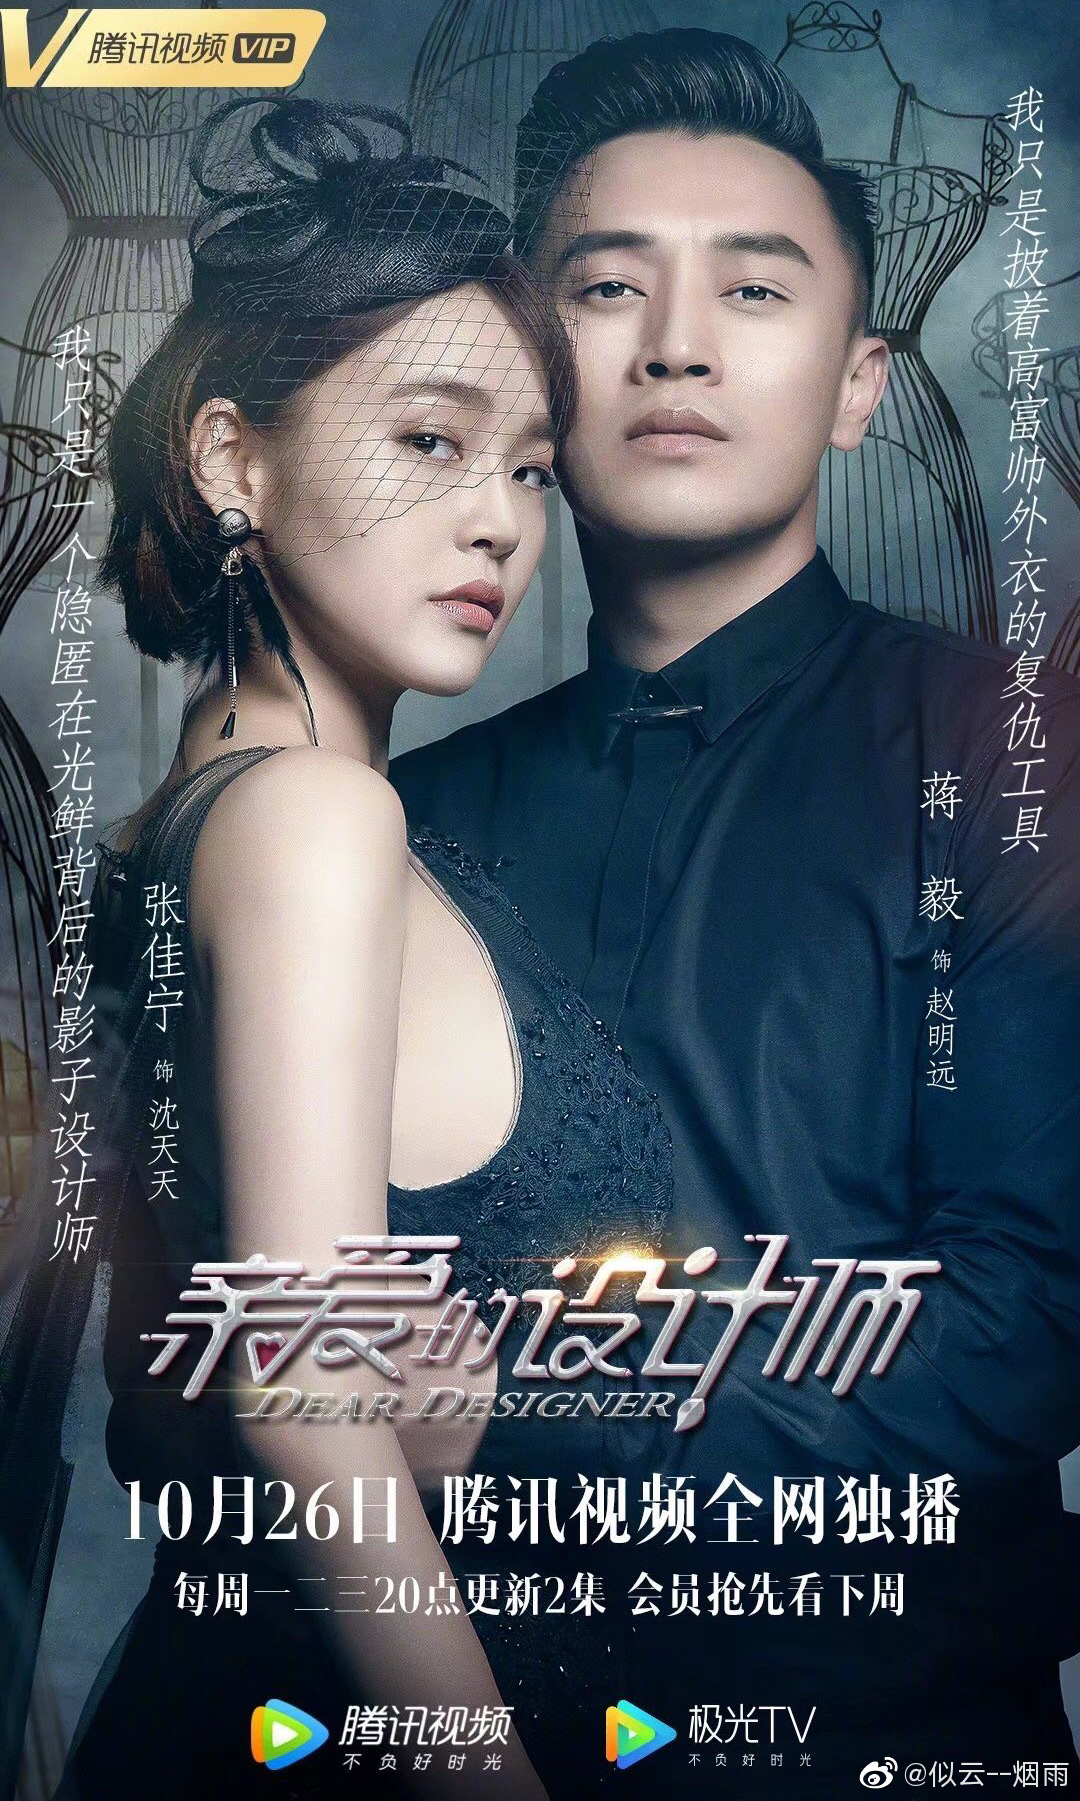 Dear Designer Chinese Drama Poster